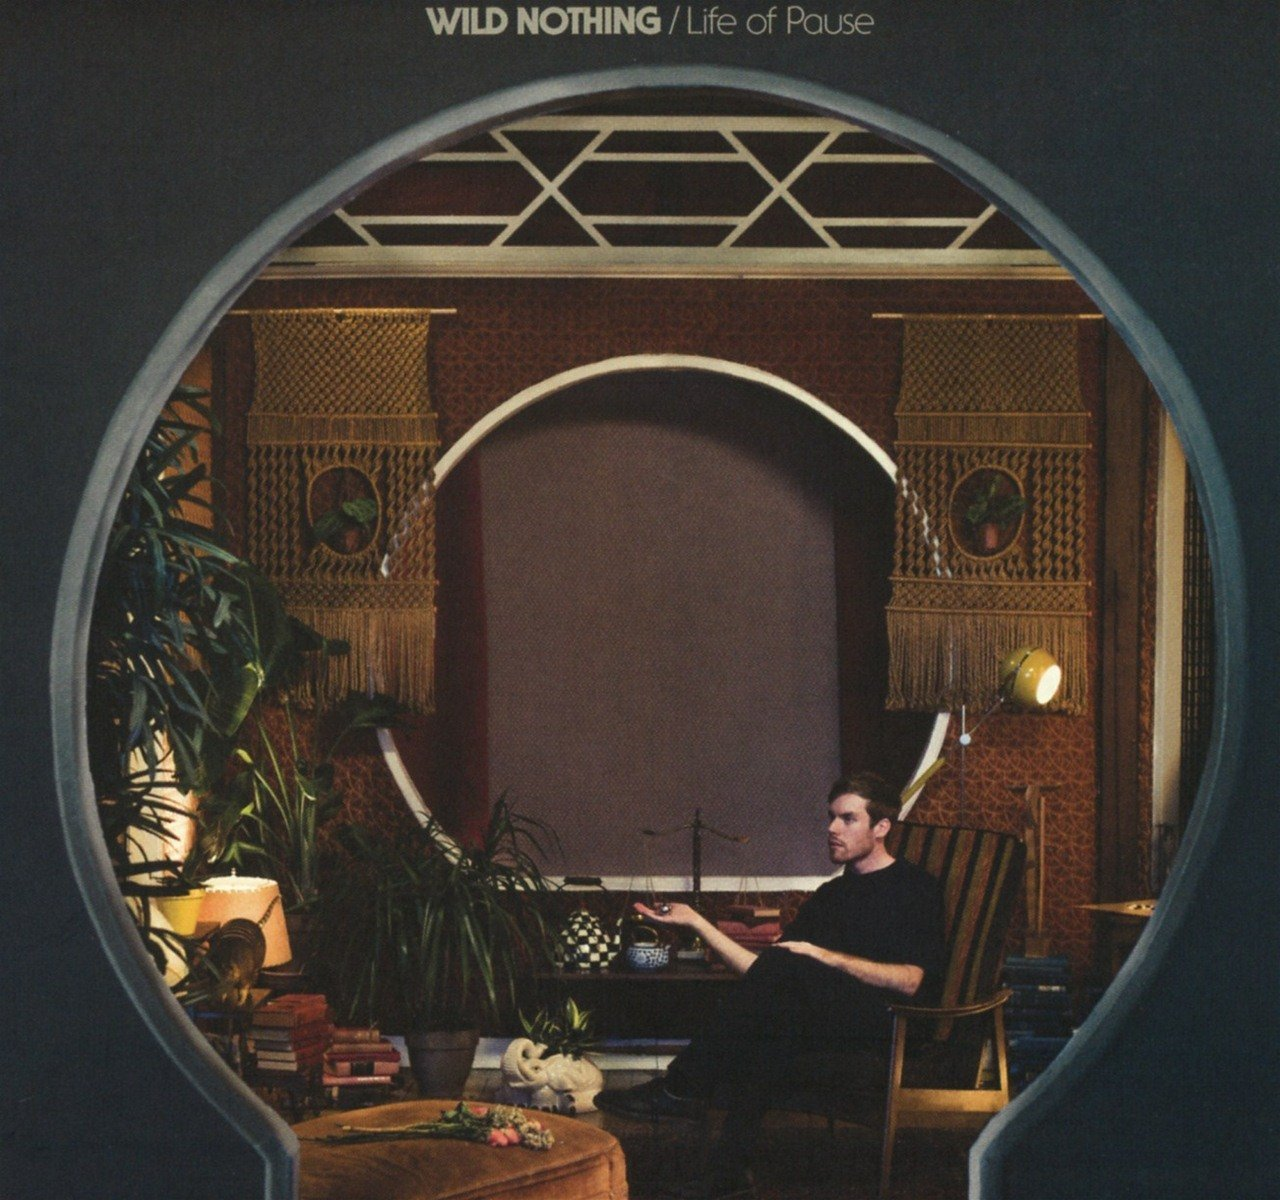 wild nothing - life of pause.jpg - 259.65 KB